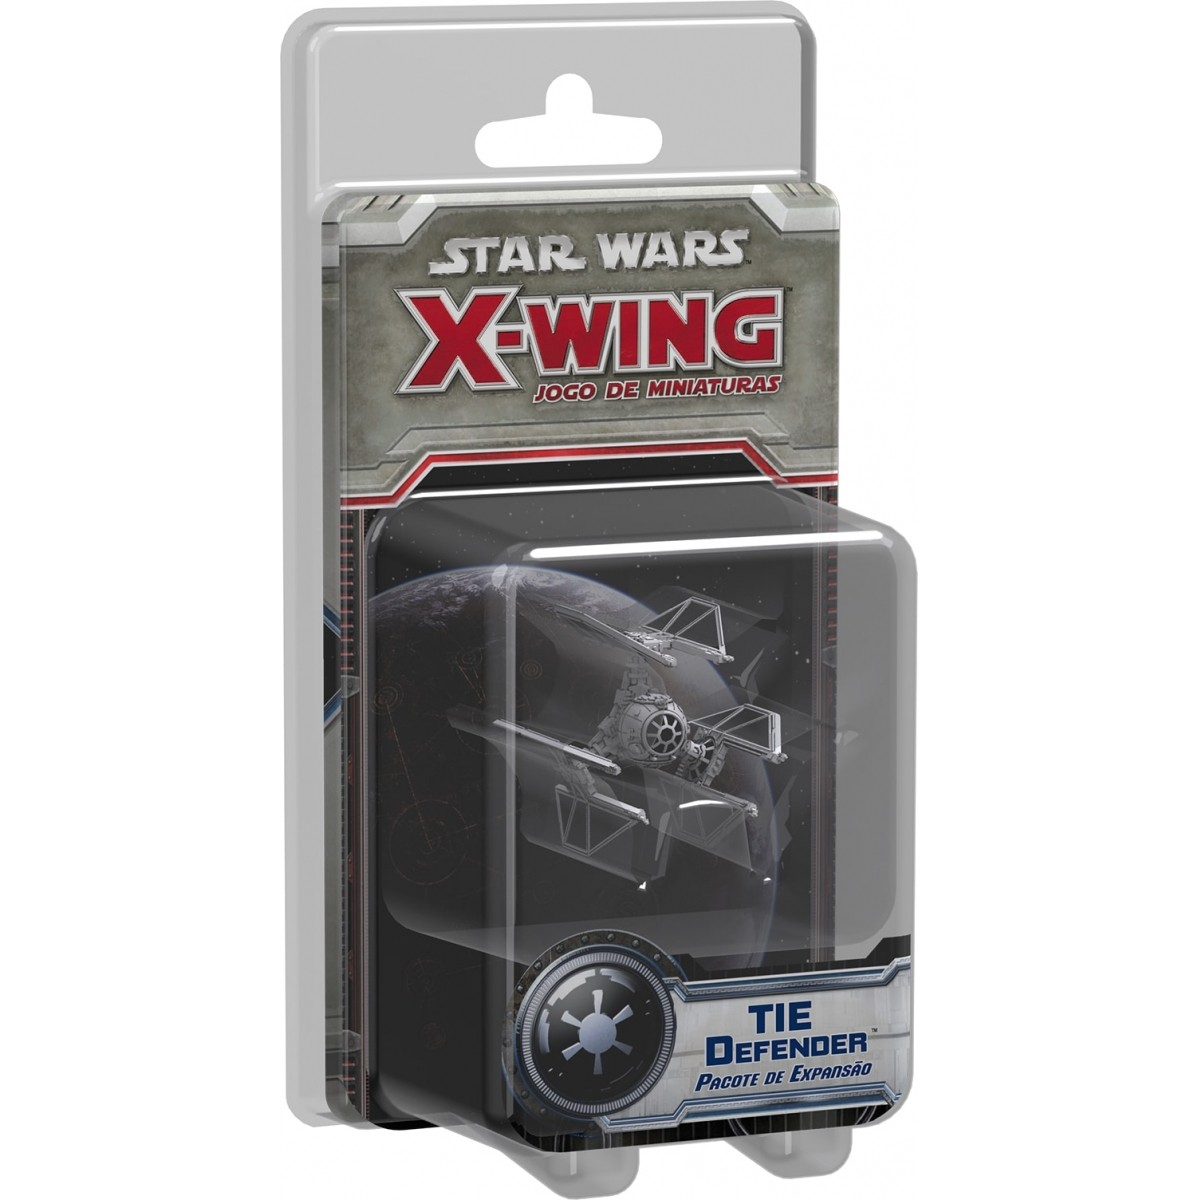 Star Wars X Wing TIE Defender Galapagos SWX017  - Place Games